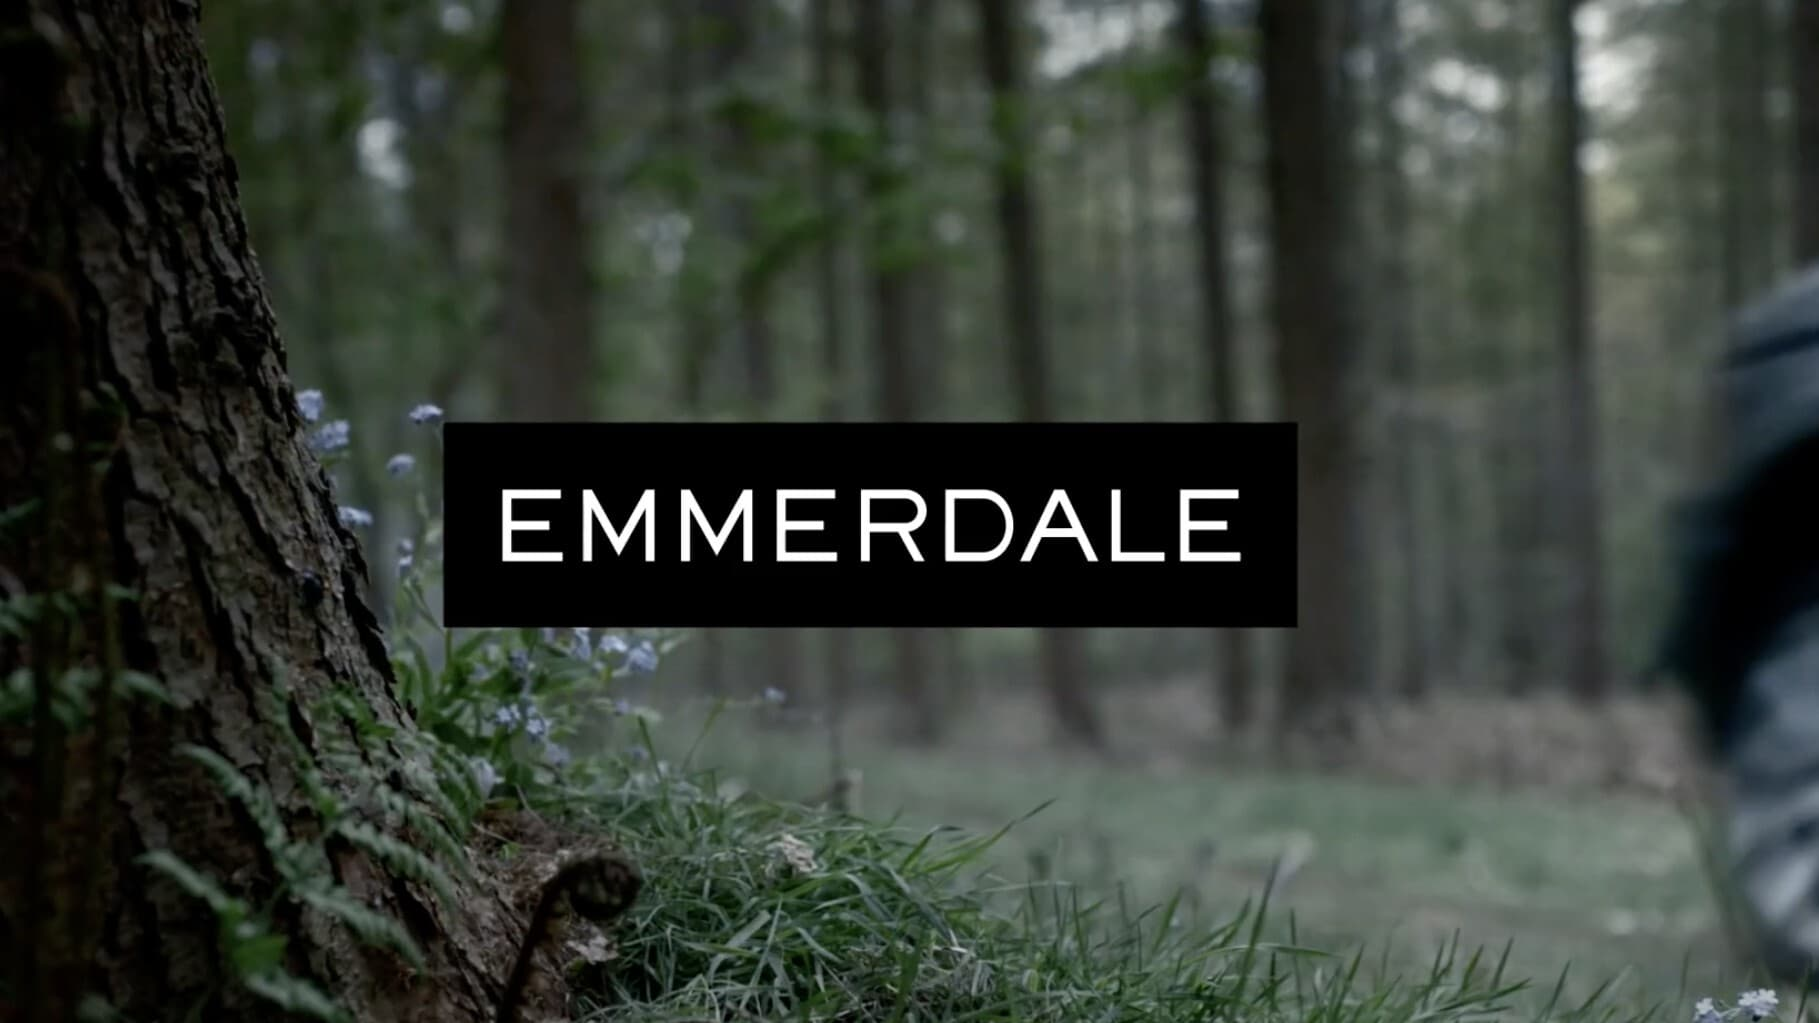 Emmerdale - Season 36 Episode 233 : October 11, 2007